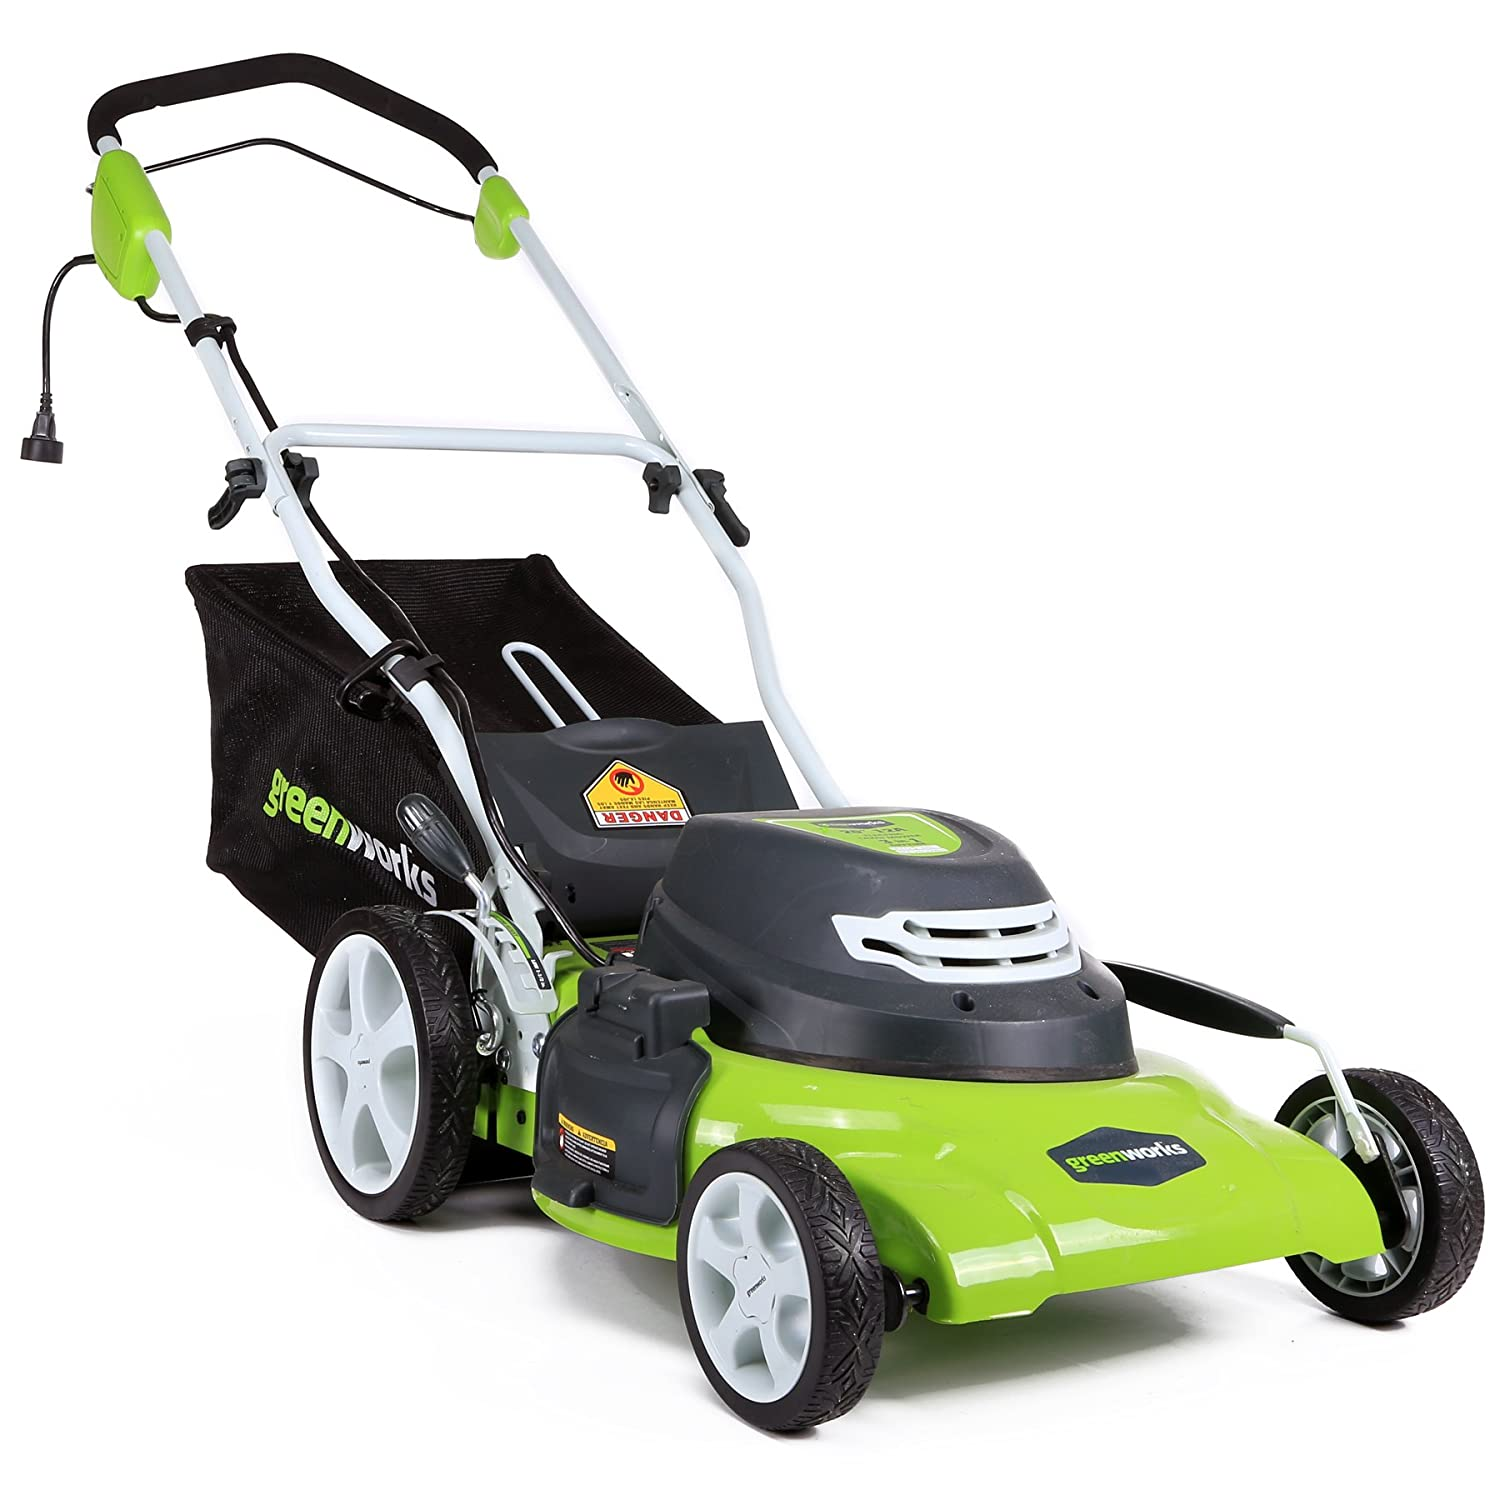 best lawn mowers Best Lawn Mowers (Review And Compare Prices 2018) 71VVvGUoDdL